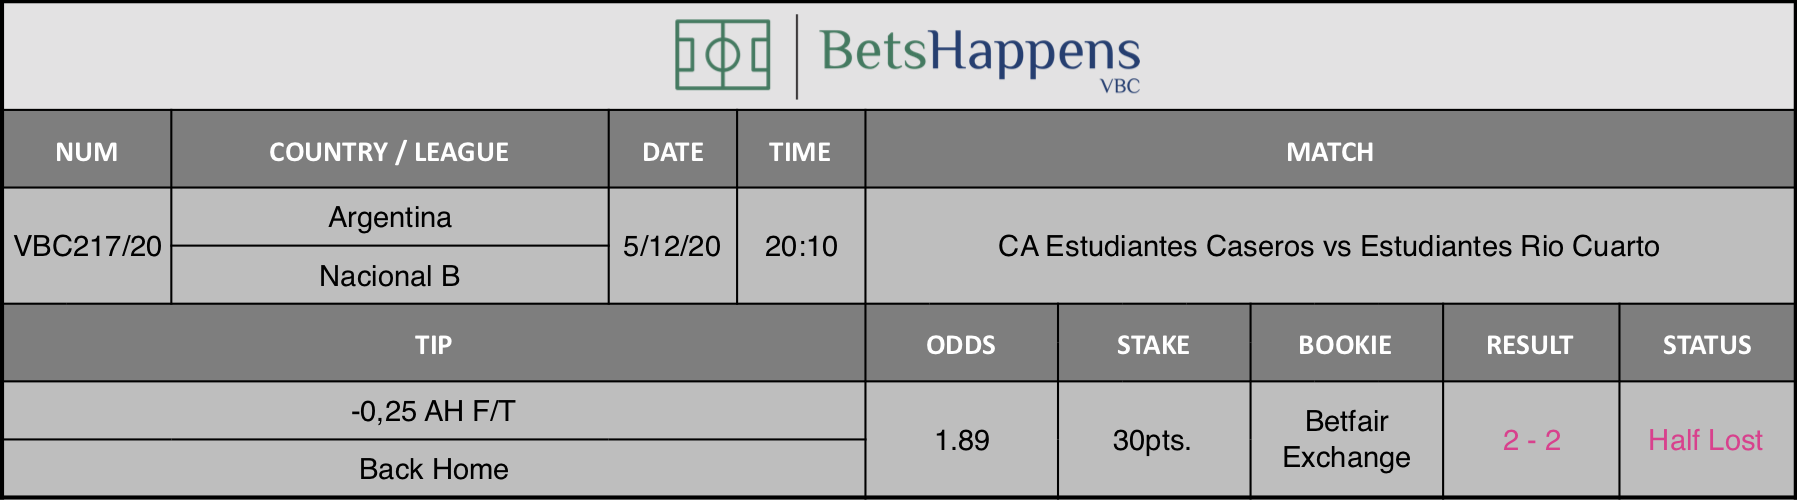 Results of our tip for the CA Estudiantes Caseros vs Estudiantes Rio Cuarto match where -0,25 AH F/T Back Home is recommended.